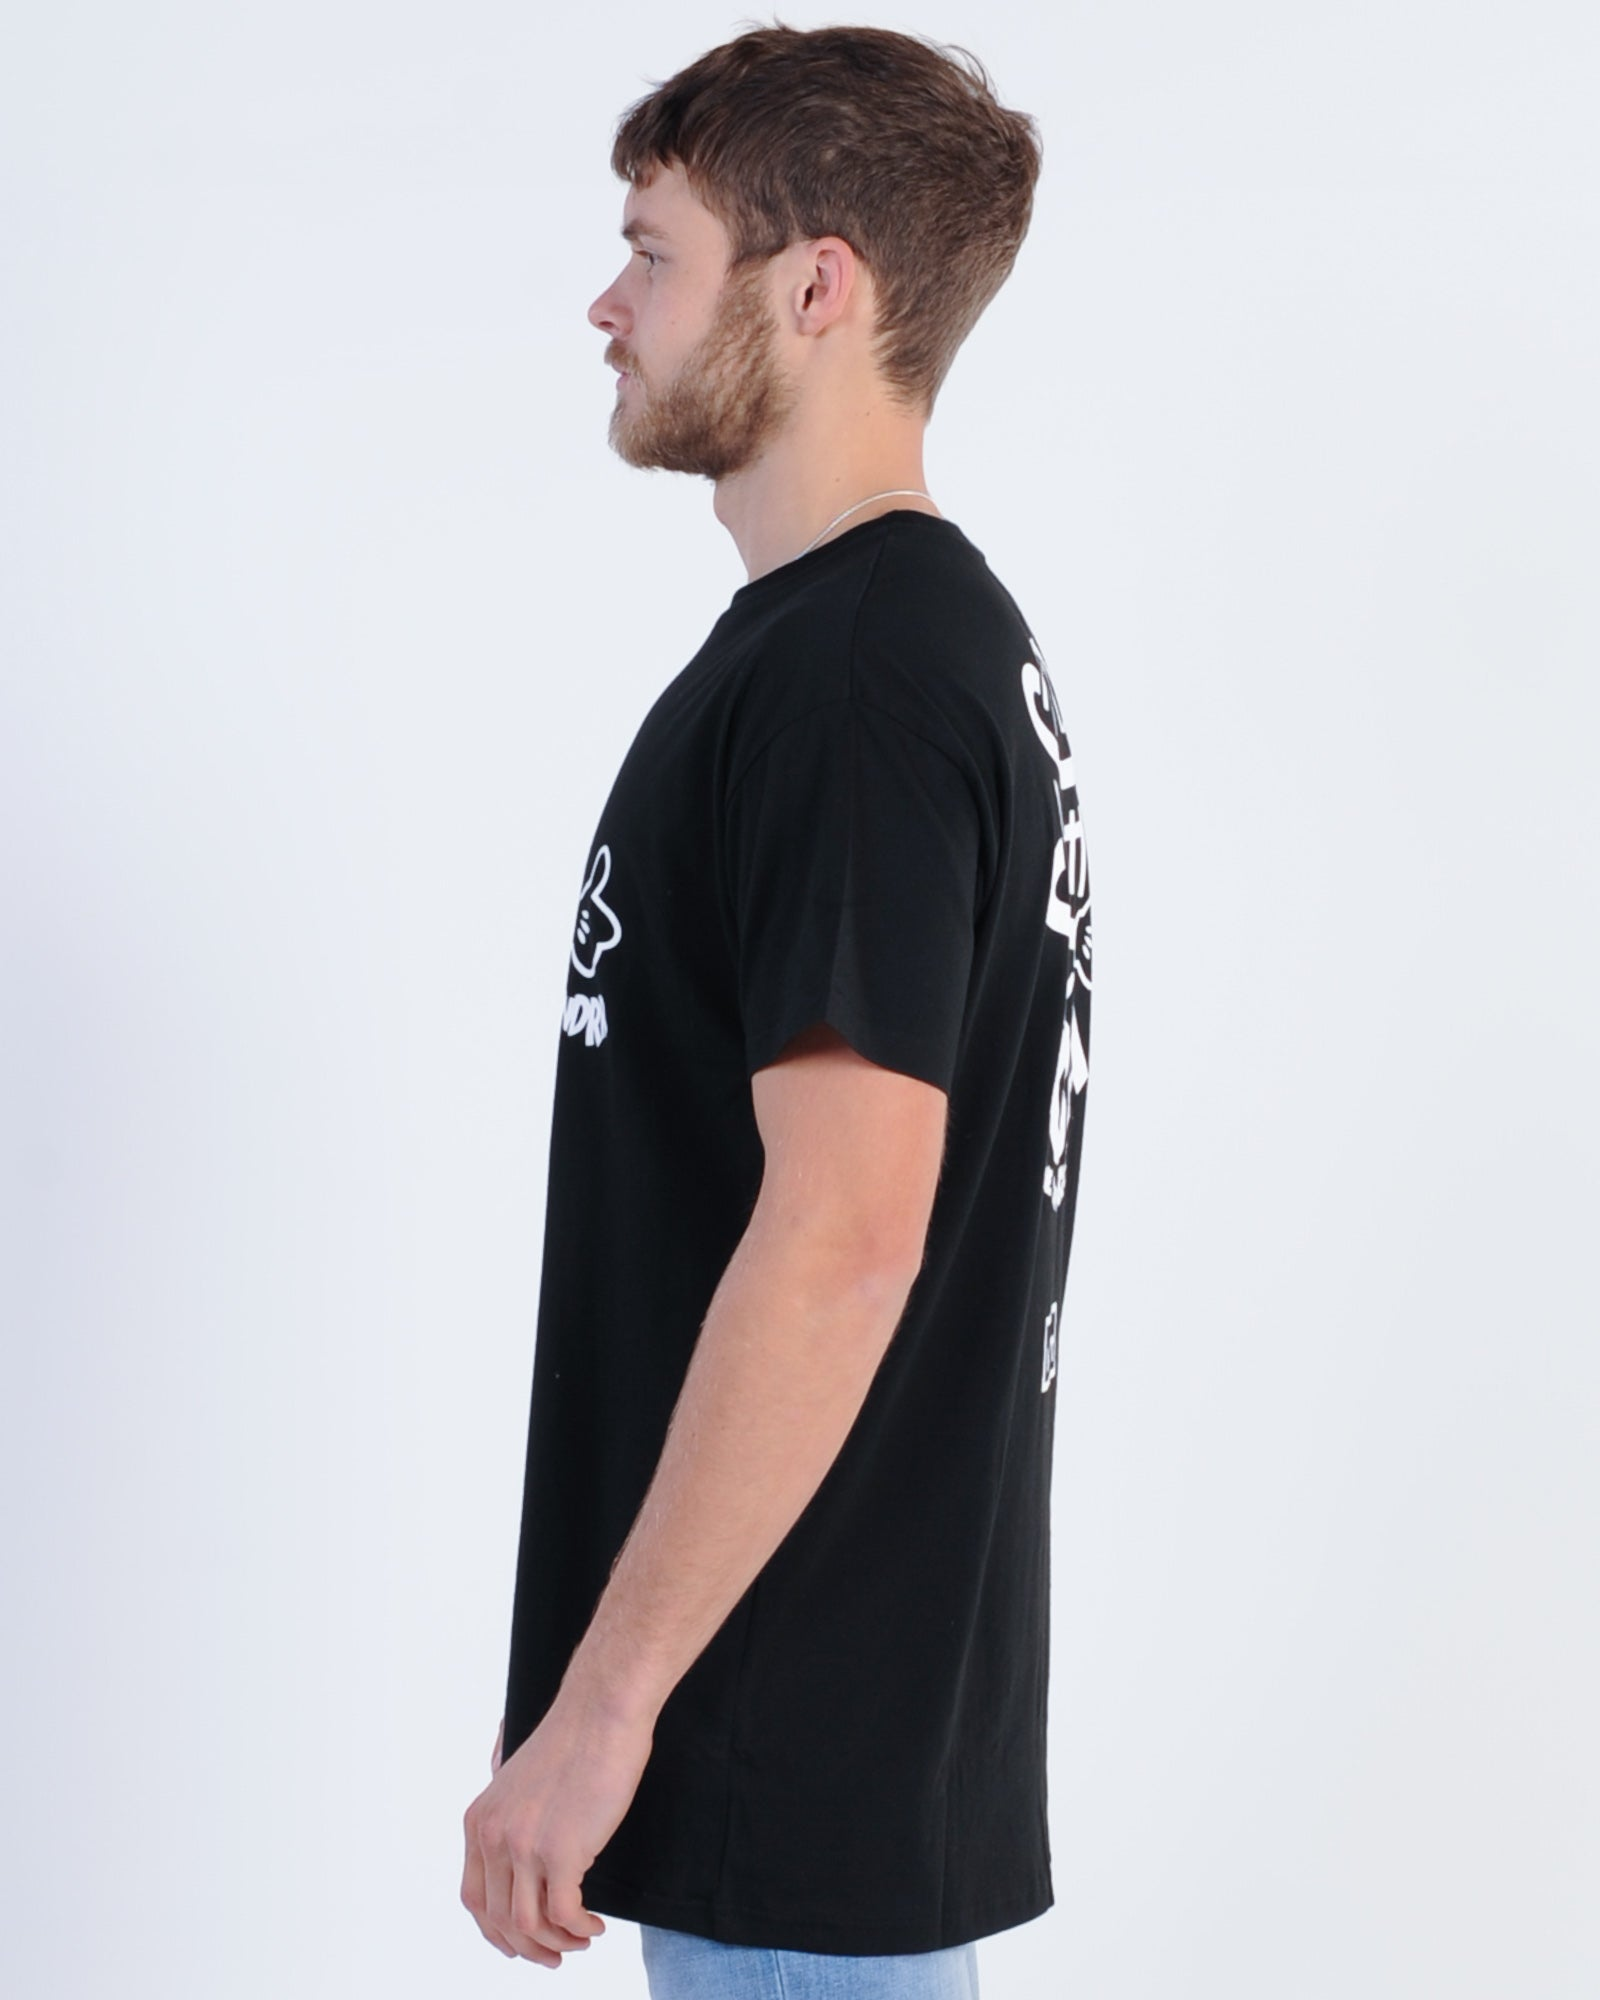 Wndrr Wgba Custom Fit Tee - Black